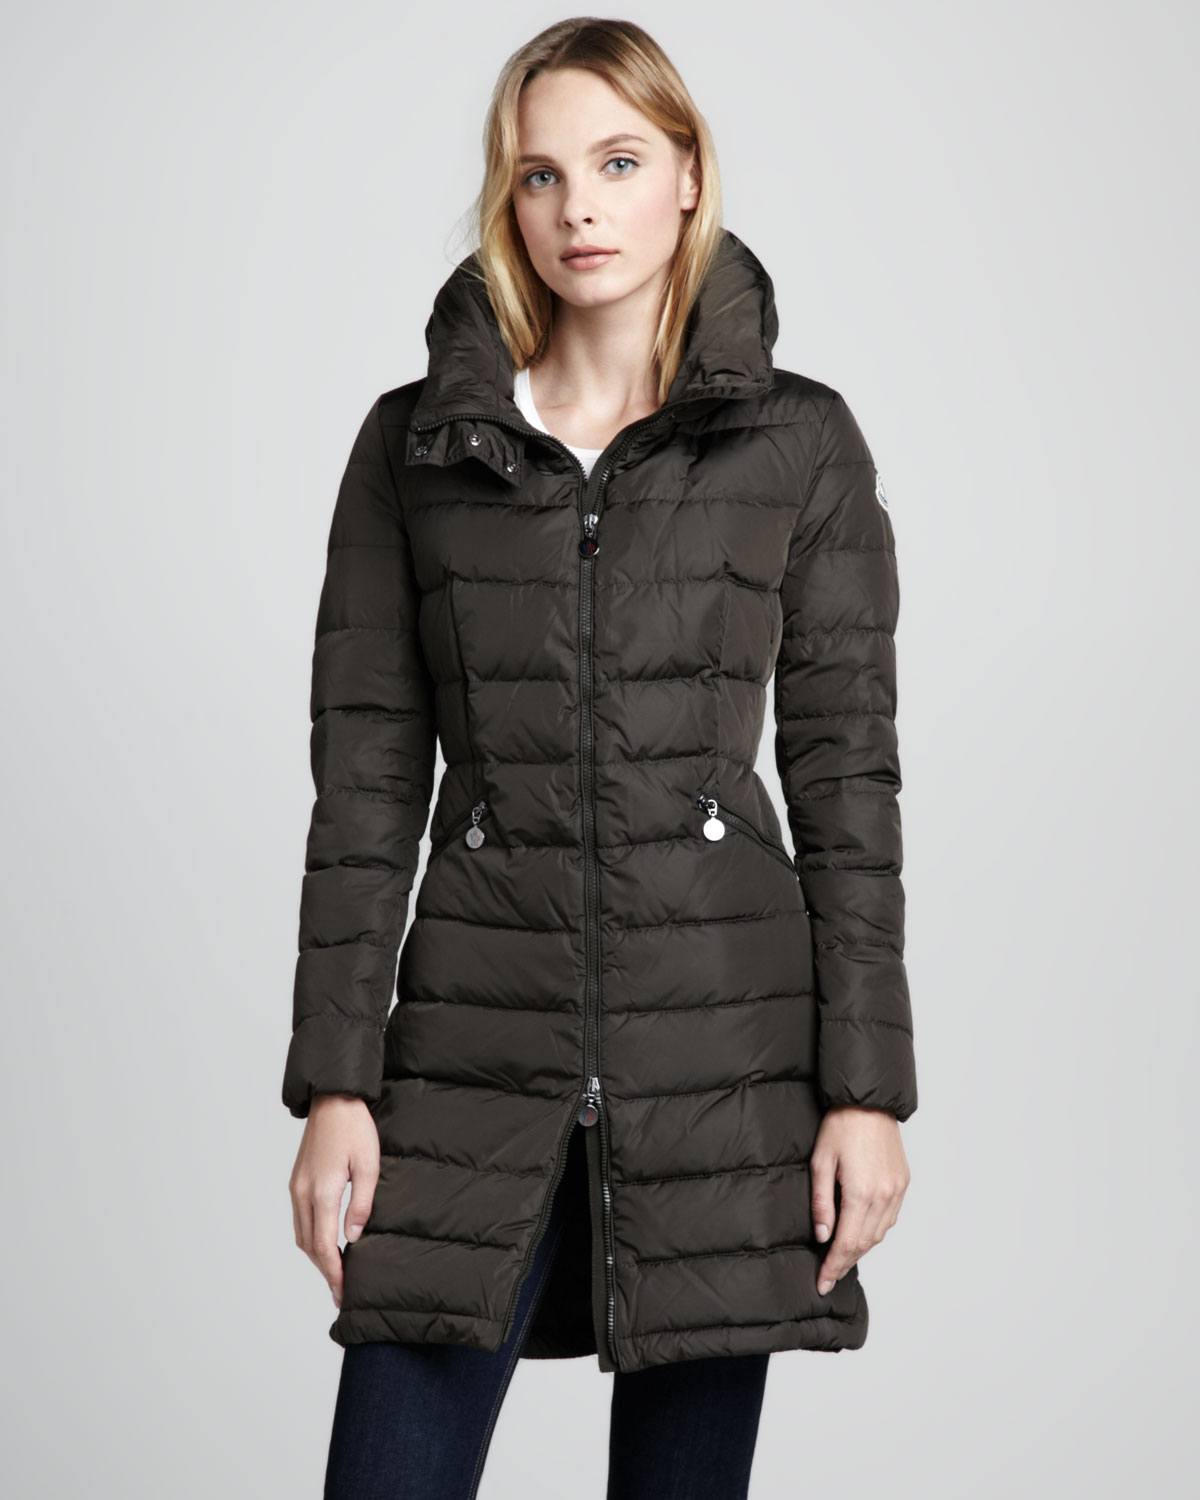 Moncler Flamme Puffer Coat in Black - Lyst